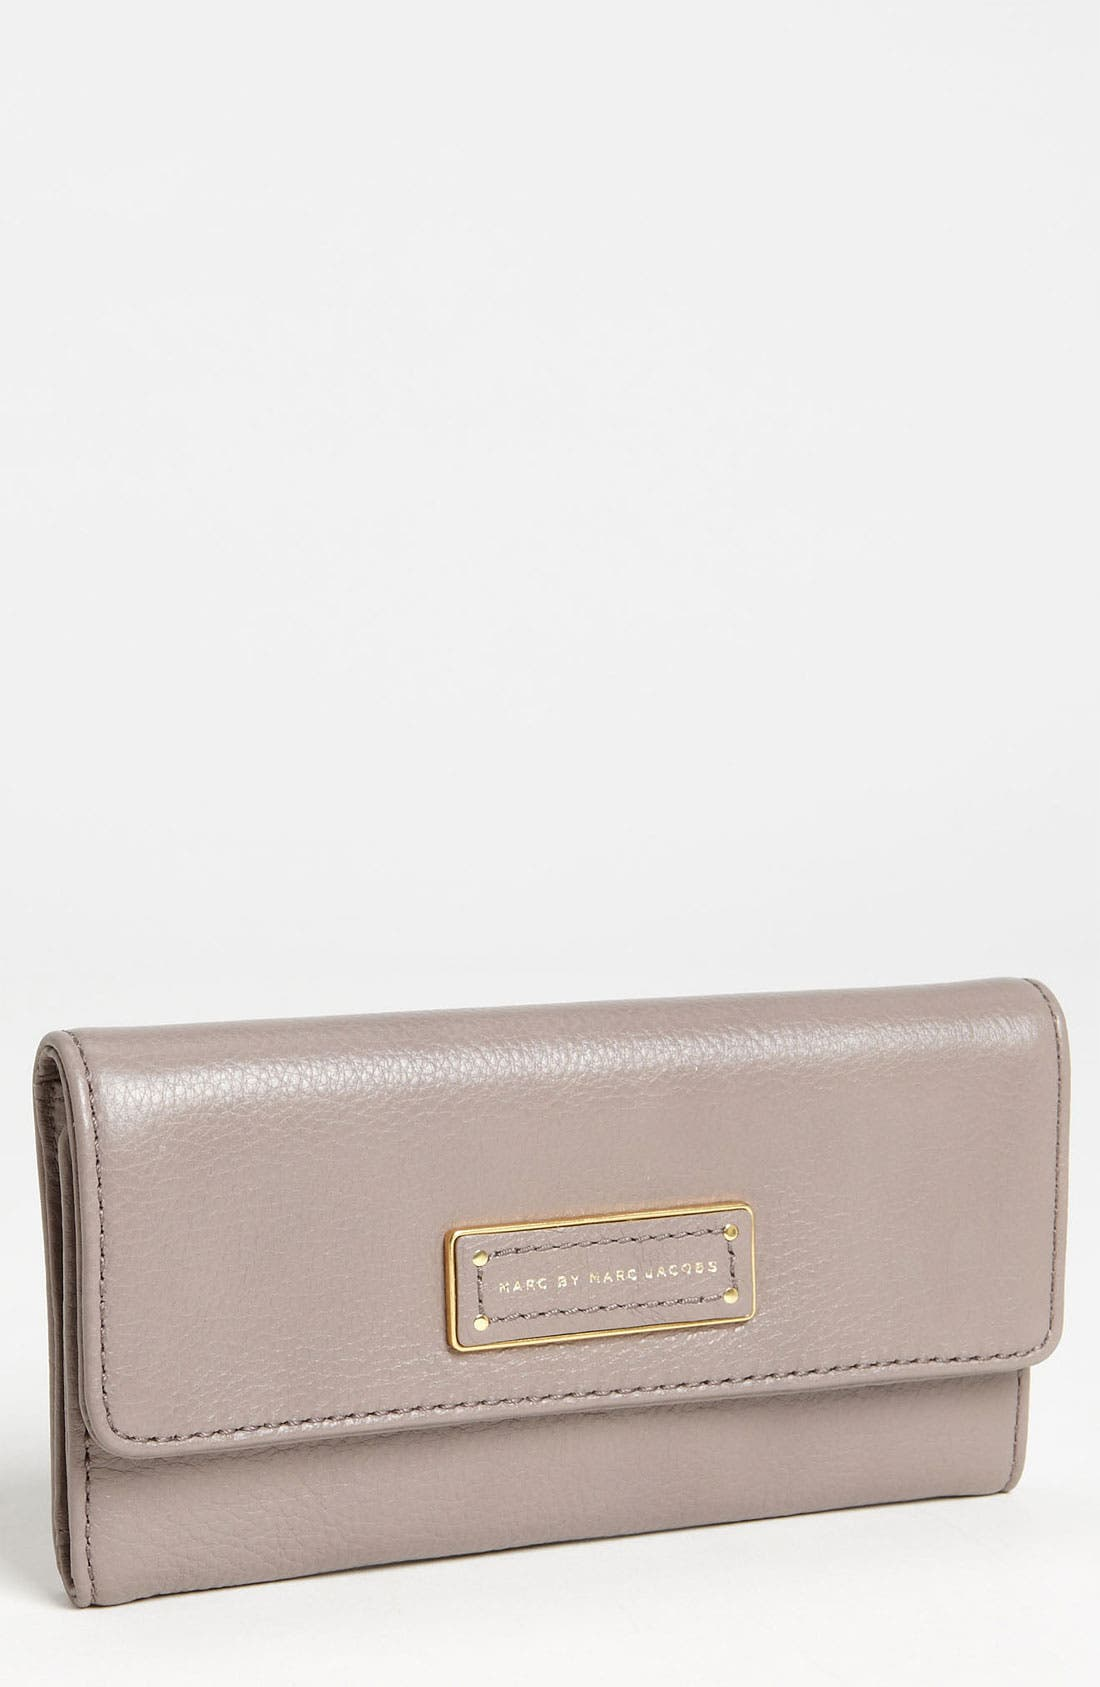 Main Image - MARC BY MARC JACOBS 'Too Hot to Handle' Wallet